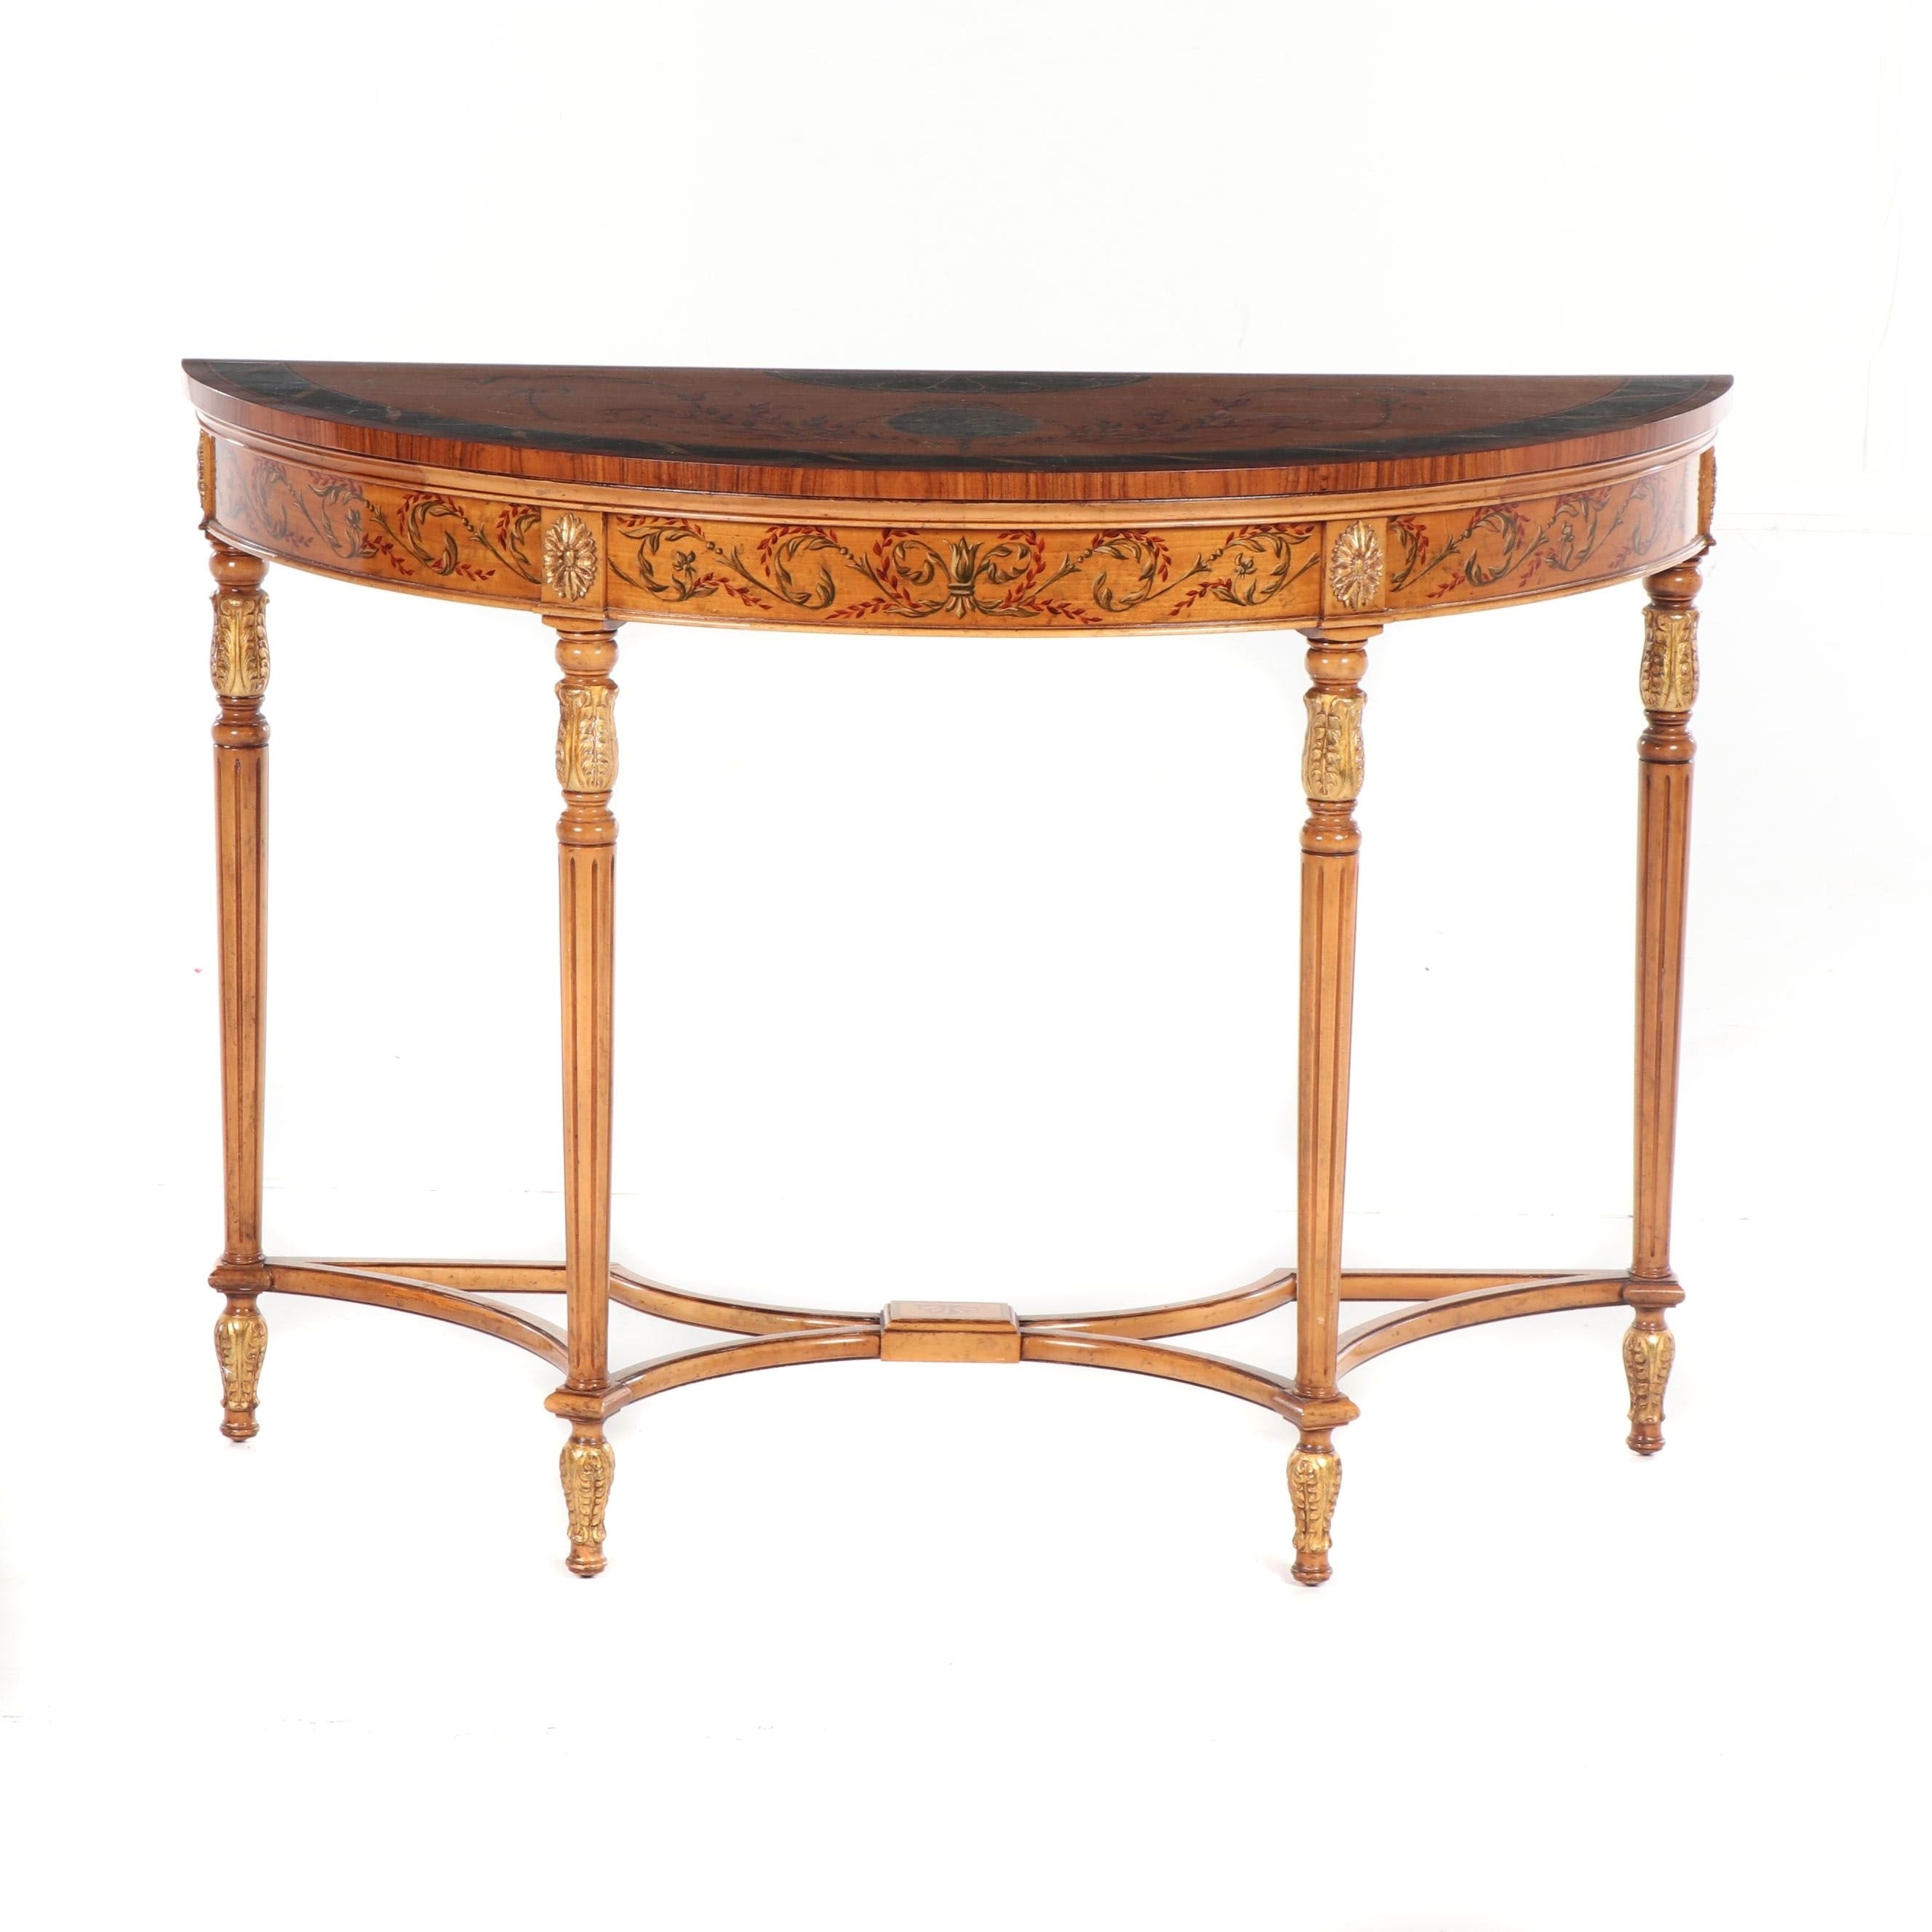 Adam Style Hand Painted Mahogany Demilune Console Table, 20th Century